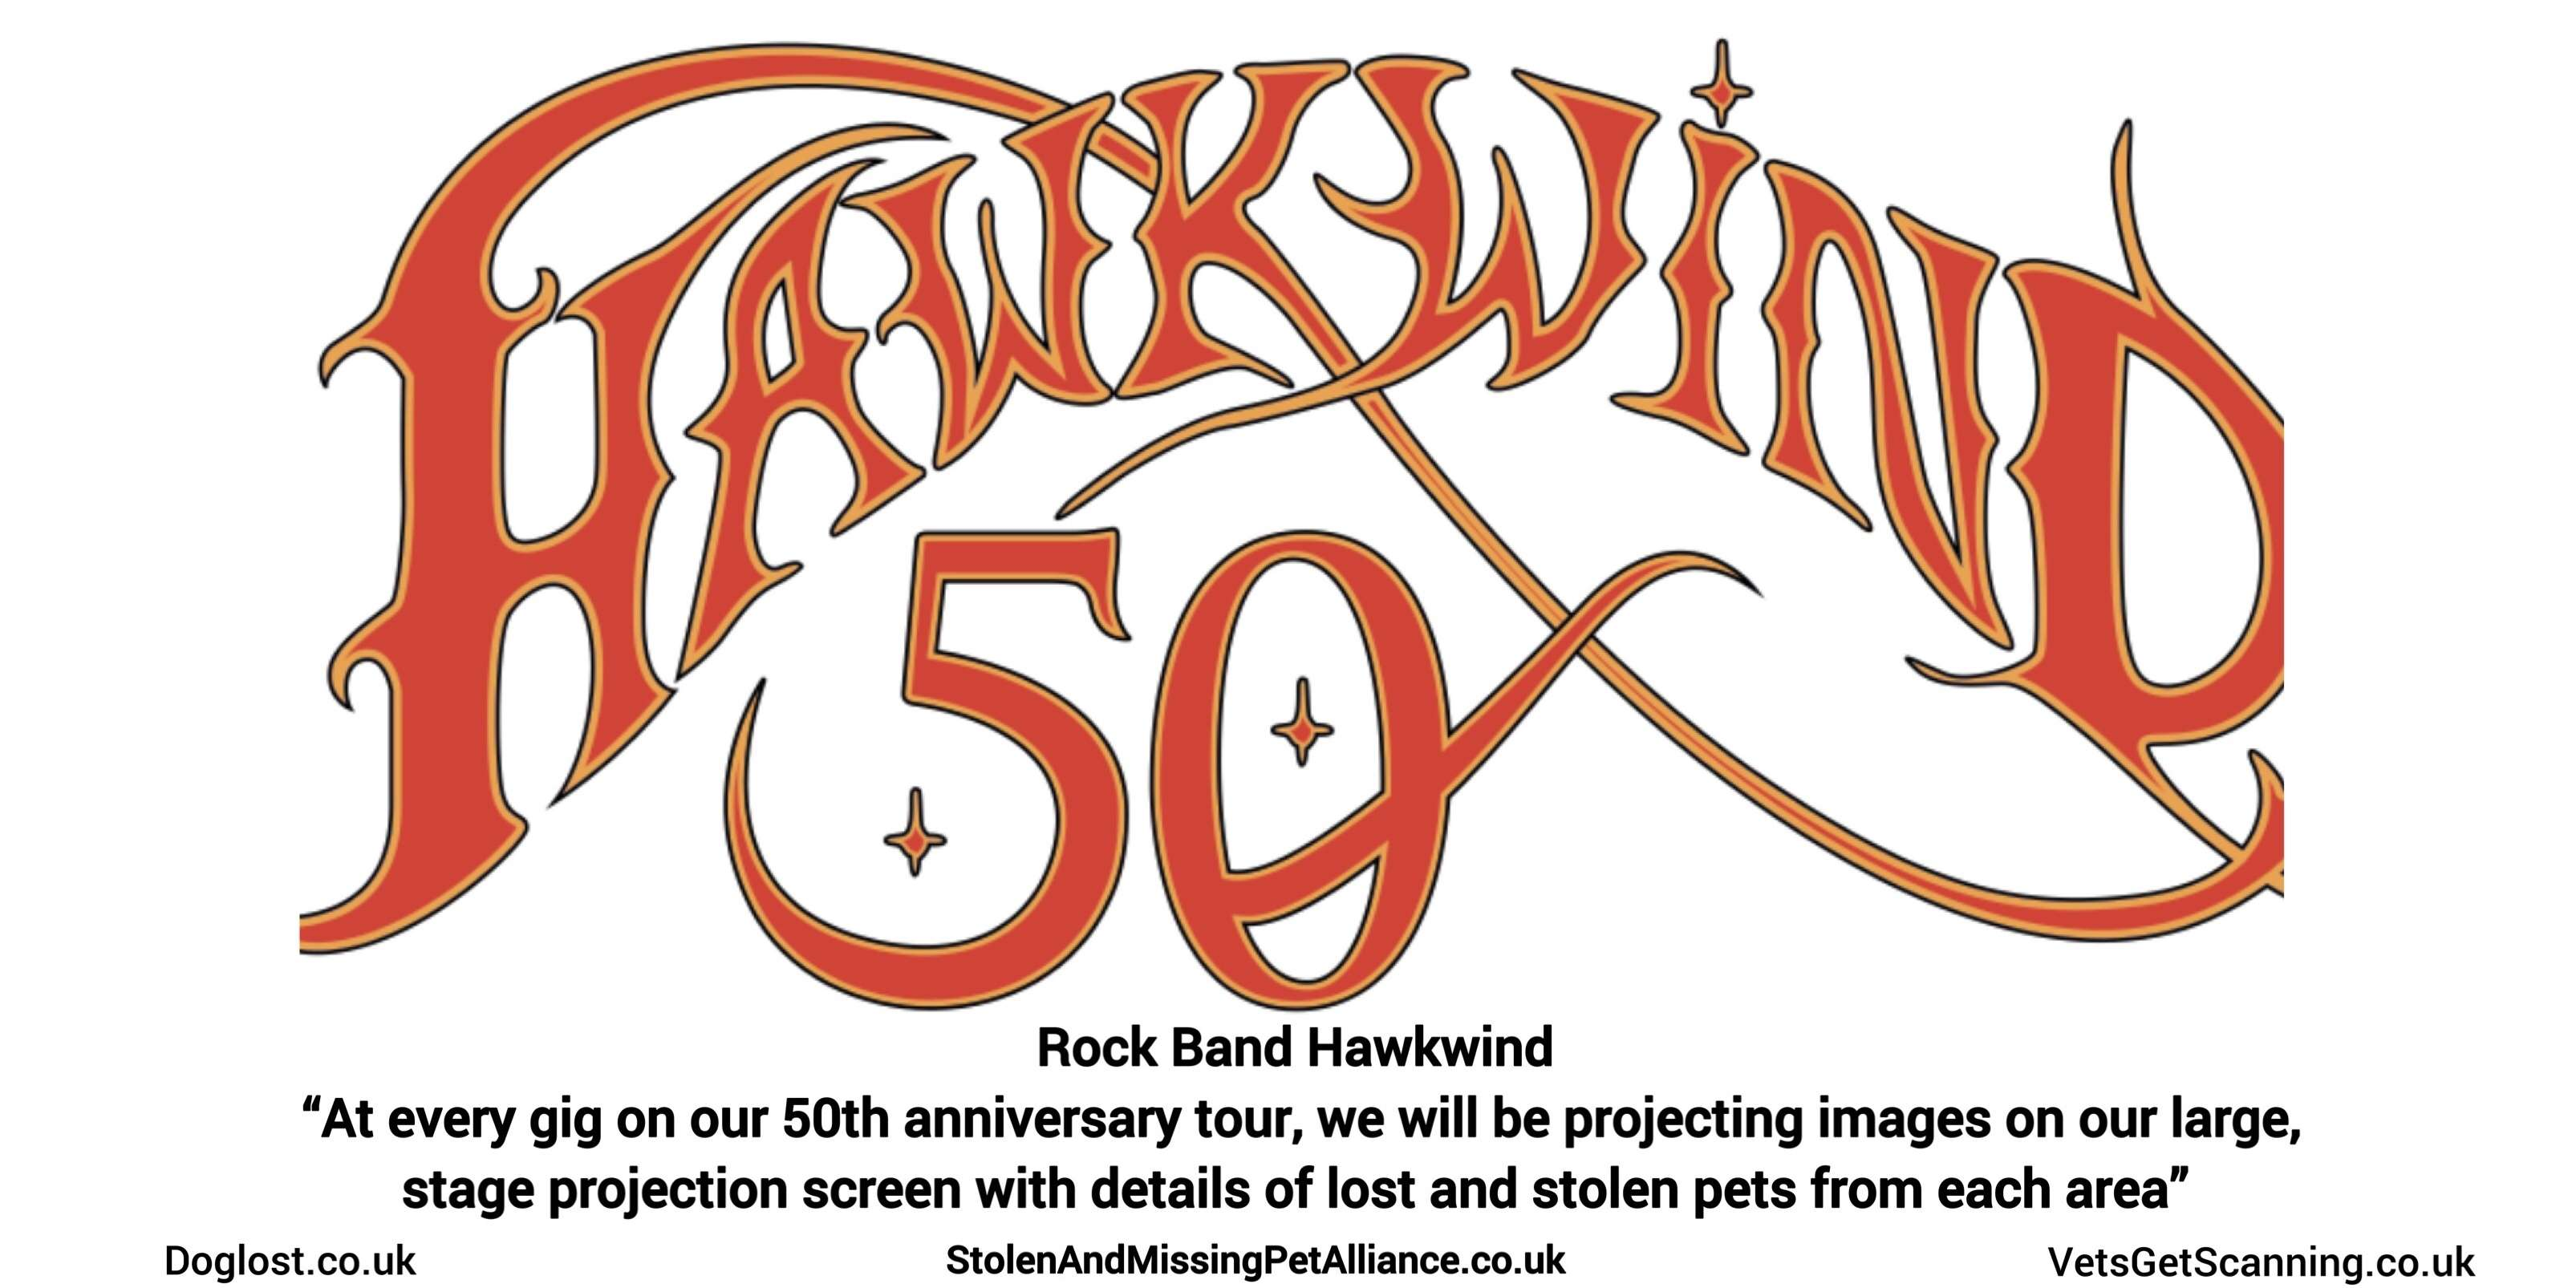 Hawkwind are proud to be helping to raise awareness of the ever growing problem of pet theft. #PetTheftReform